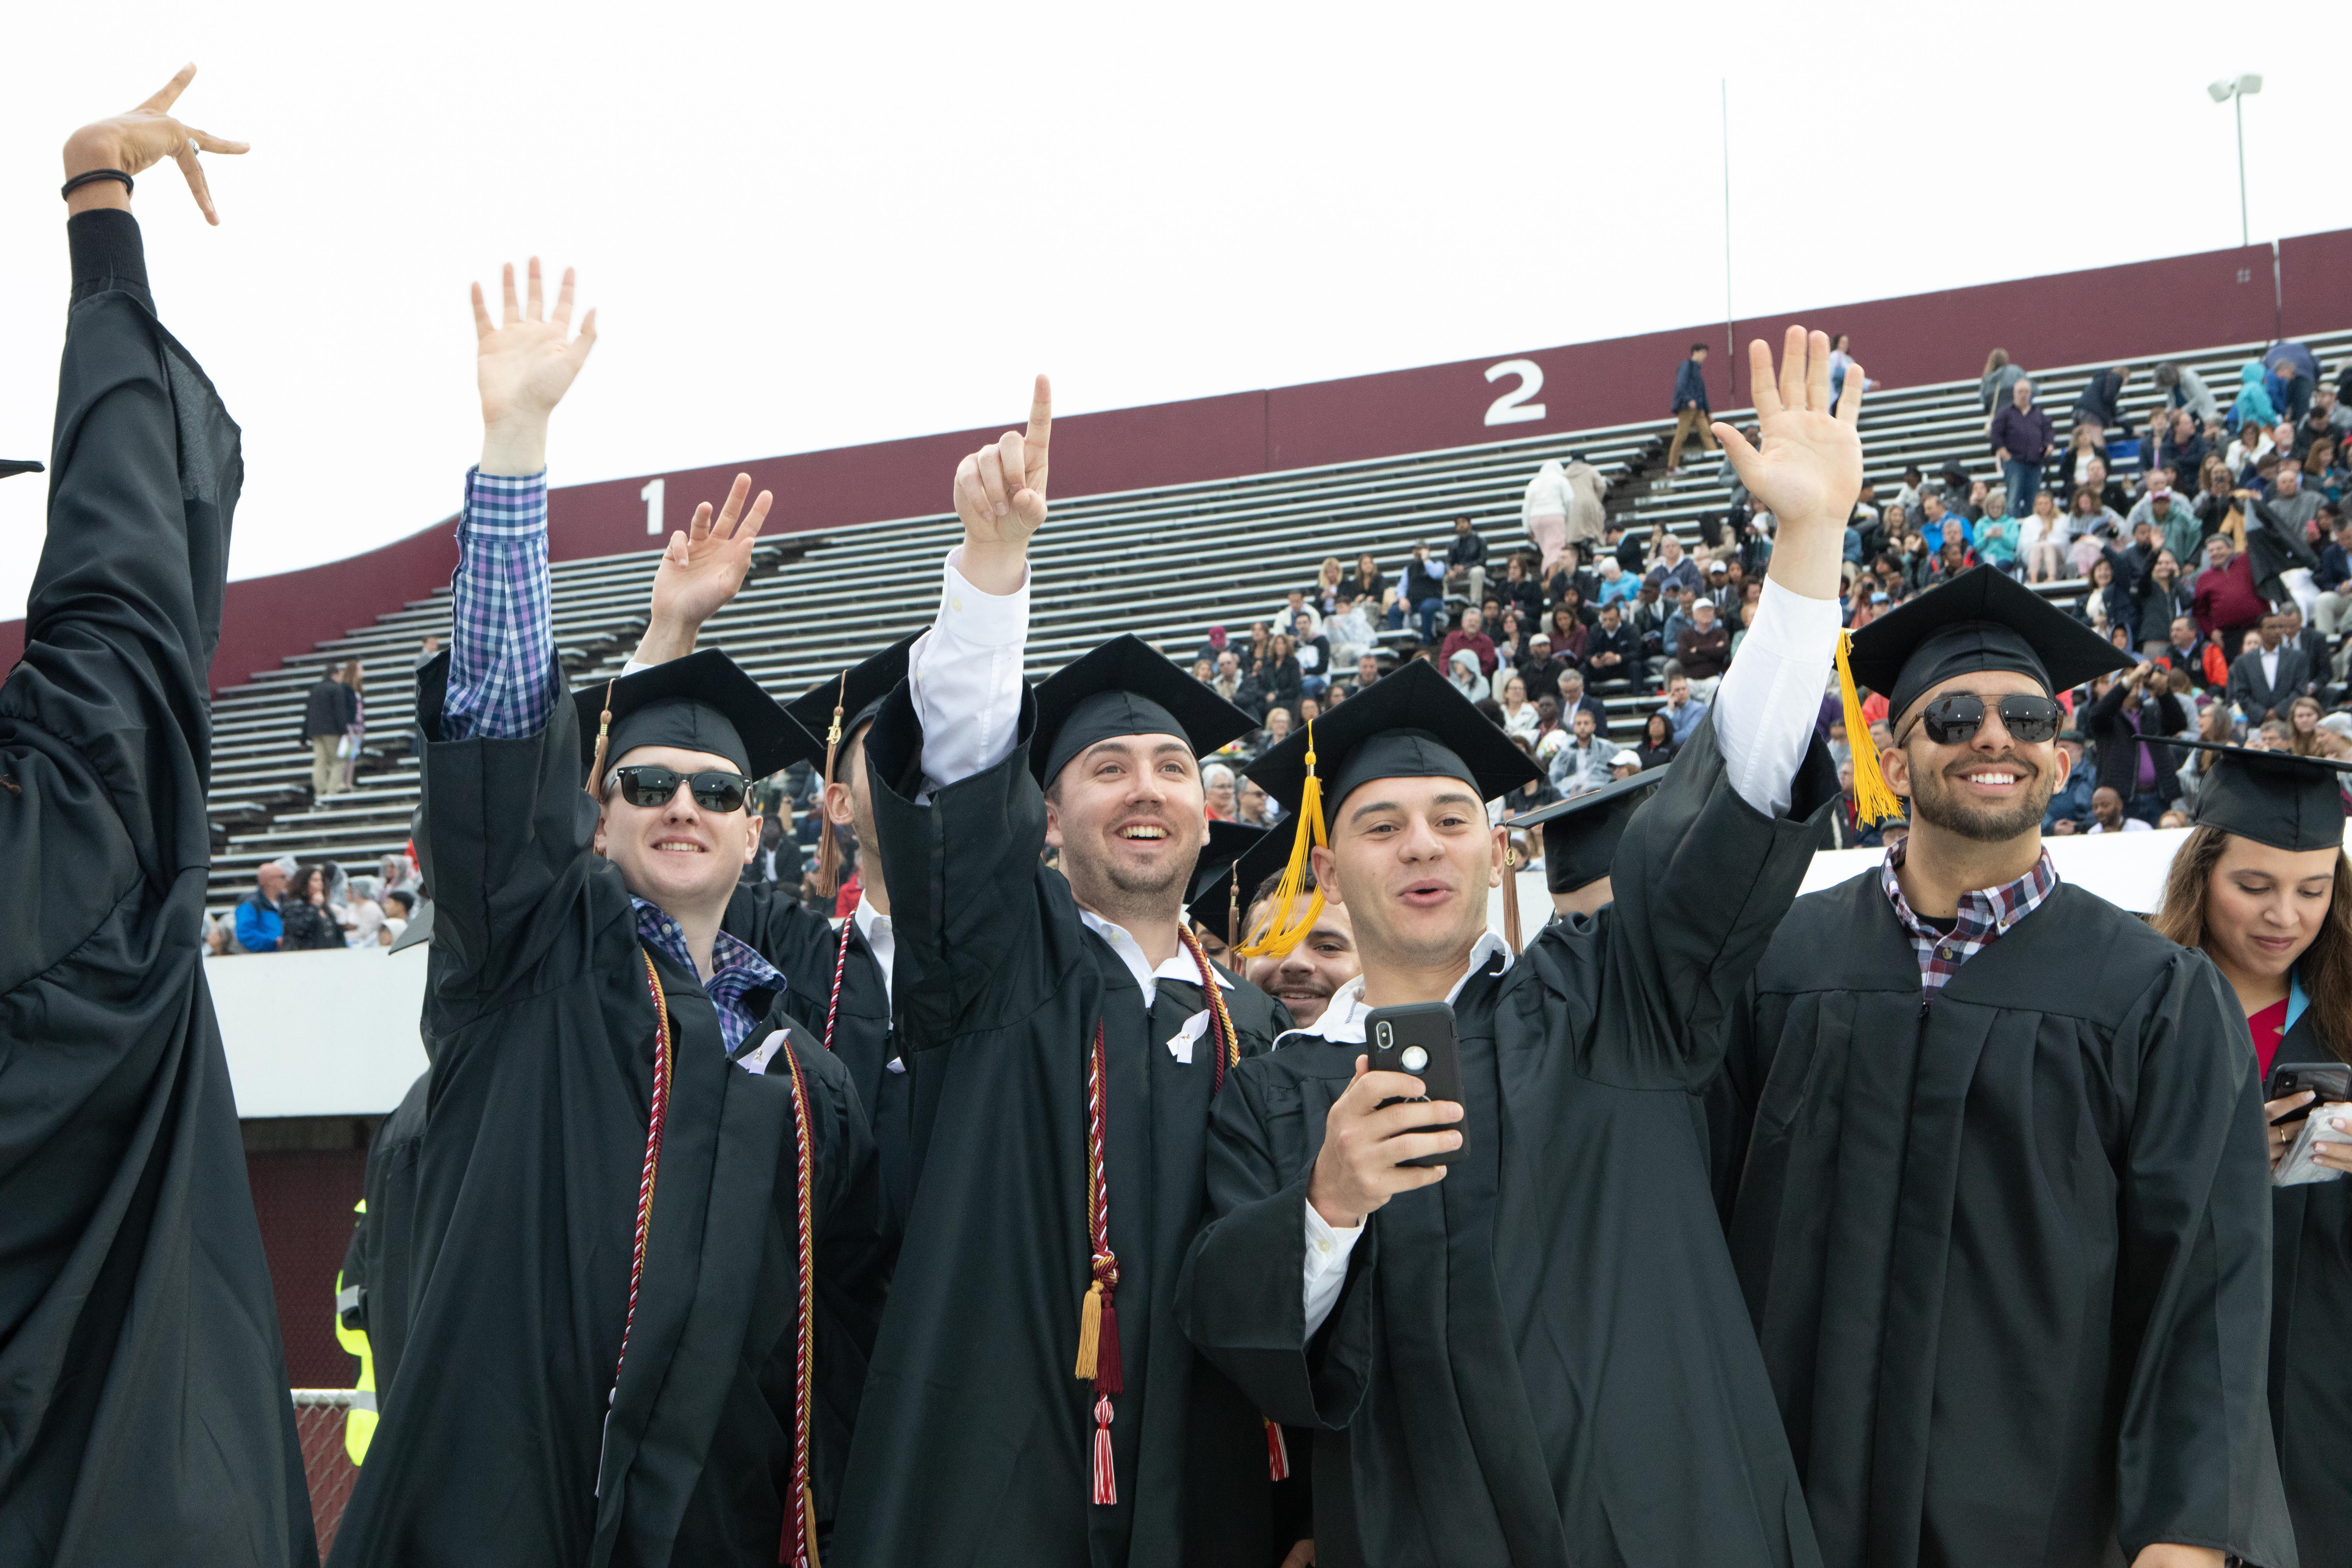 Umass Lowell Graduation 2020.Umass Trustees Vote To Raise Tuition And Fees By 2 5 For